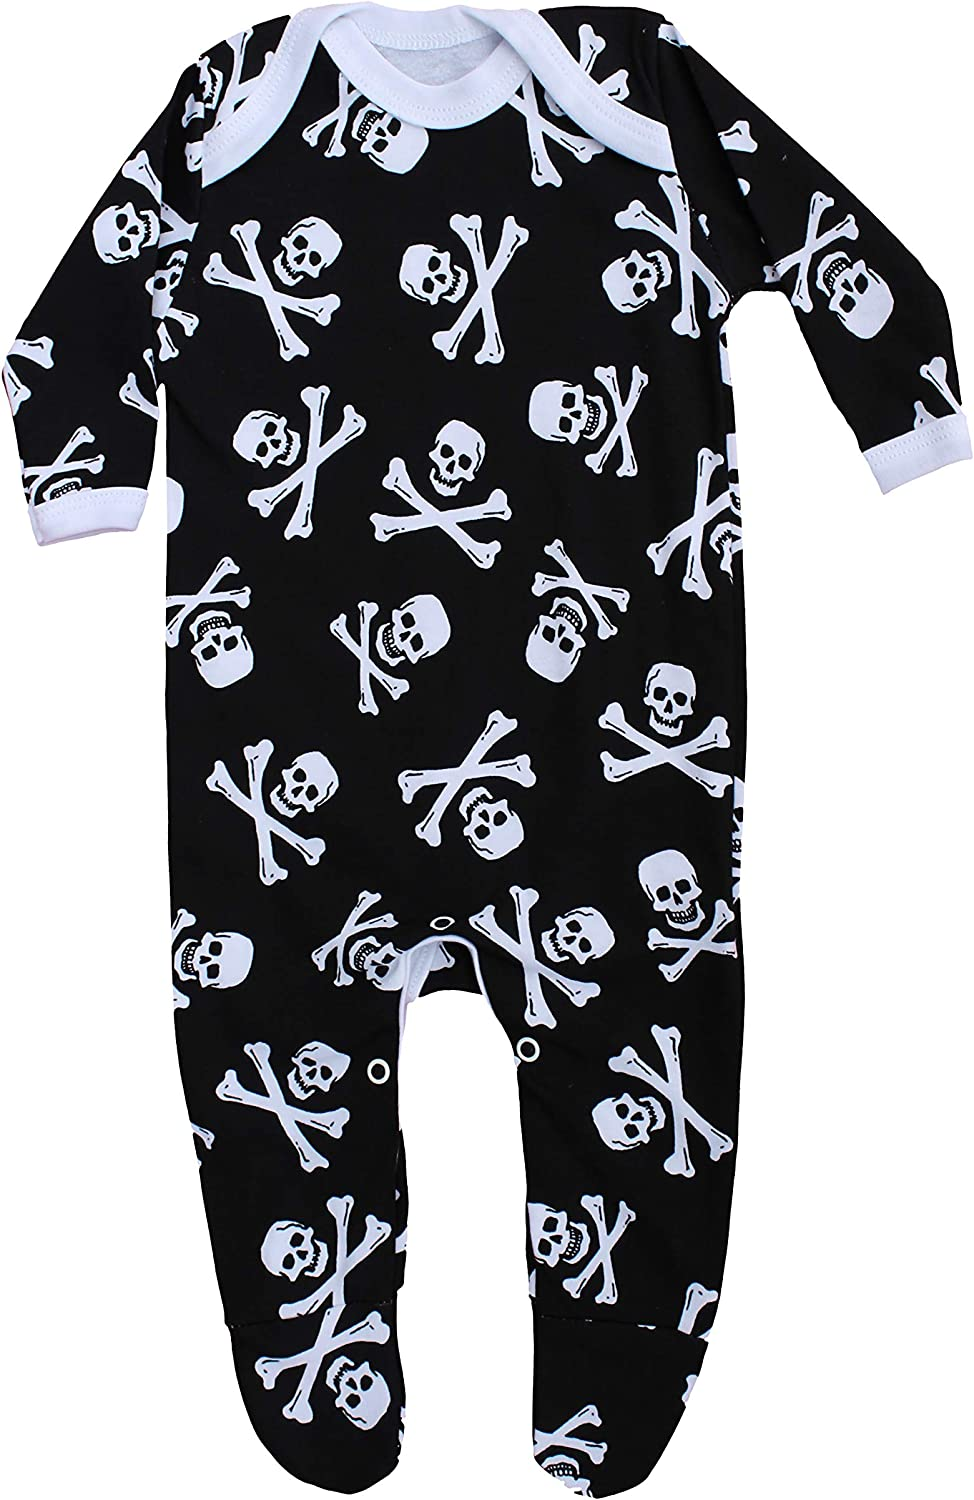 Alternative Baby Outfit Sleepsuit for Boys or Girls New Skull /& Crossbones Pirate Romper Jolly Roger Ideal Baby Shower or New Baby Gift Goth Baby Clothes BABY MOOS UK 6-12 Months